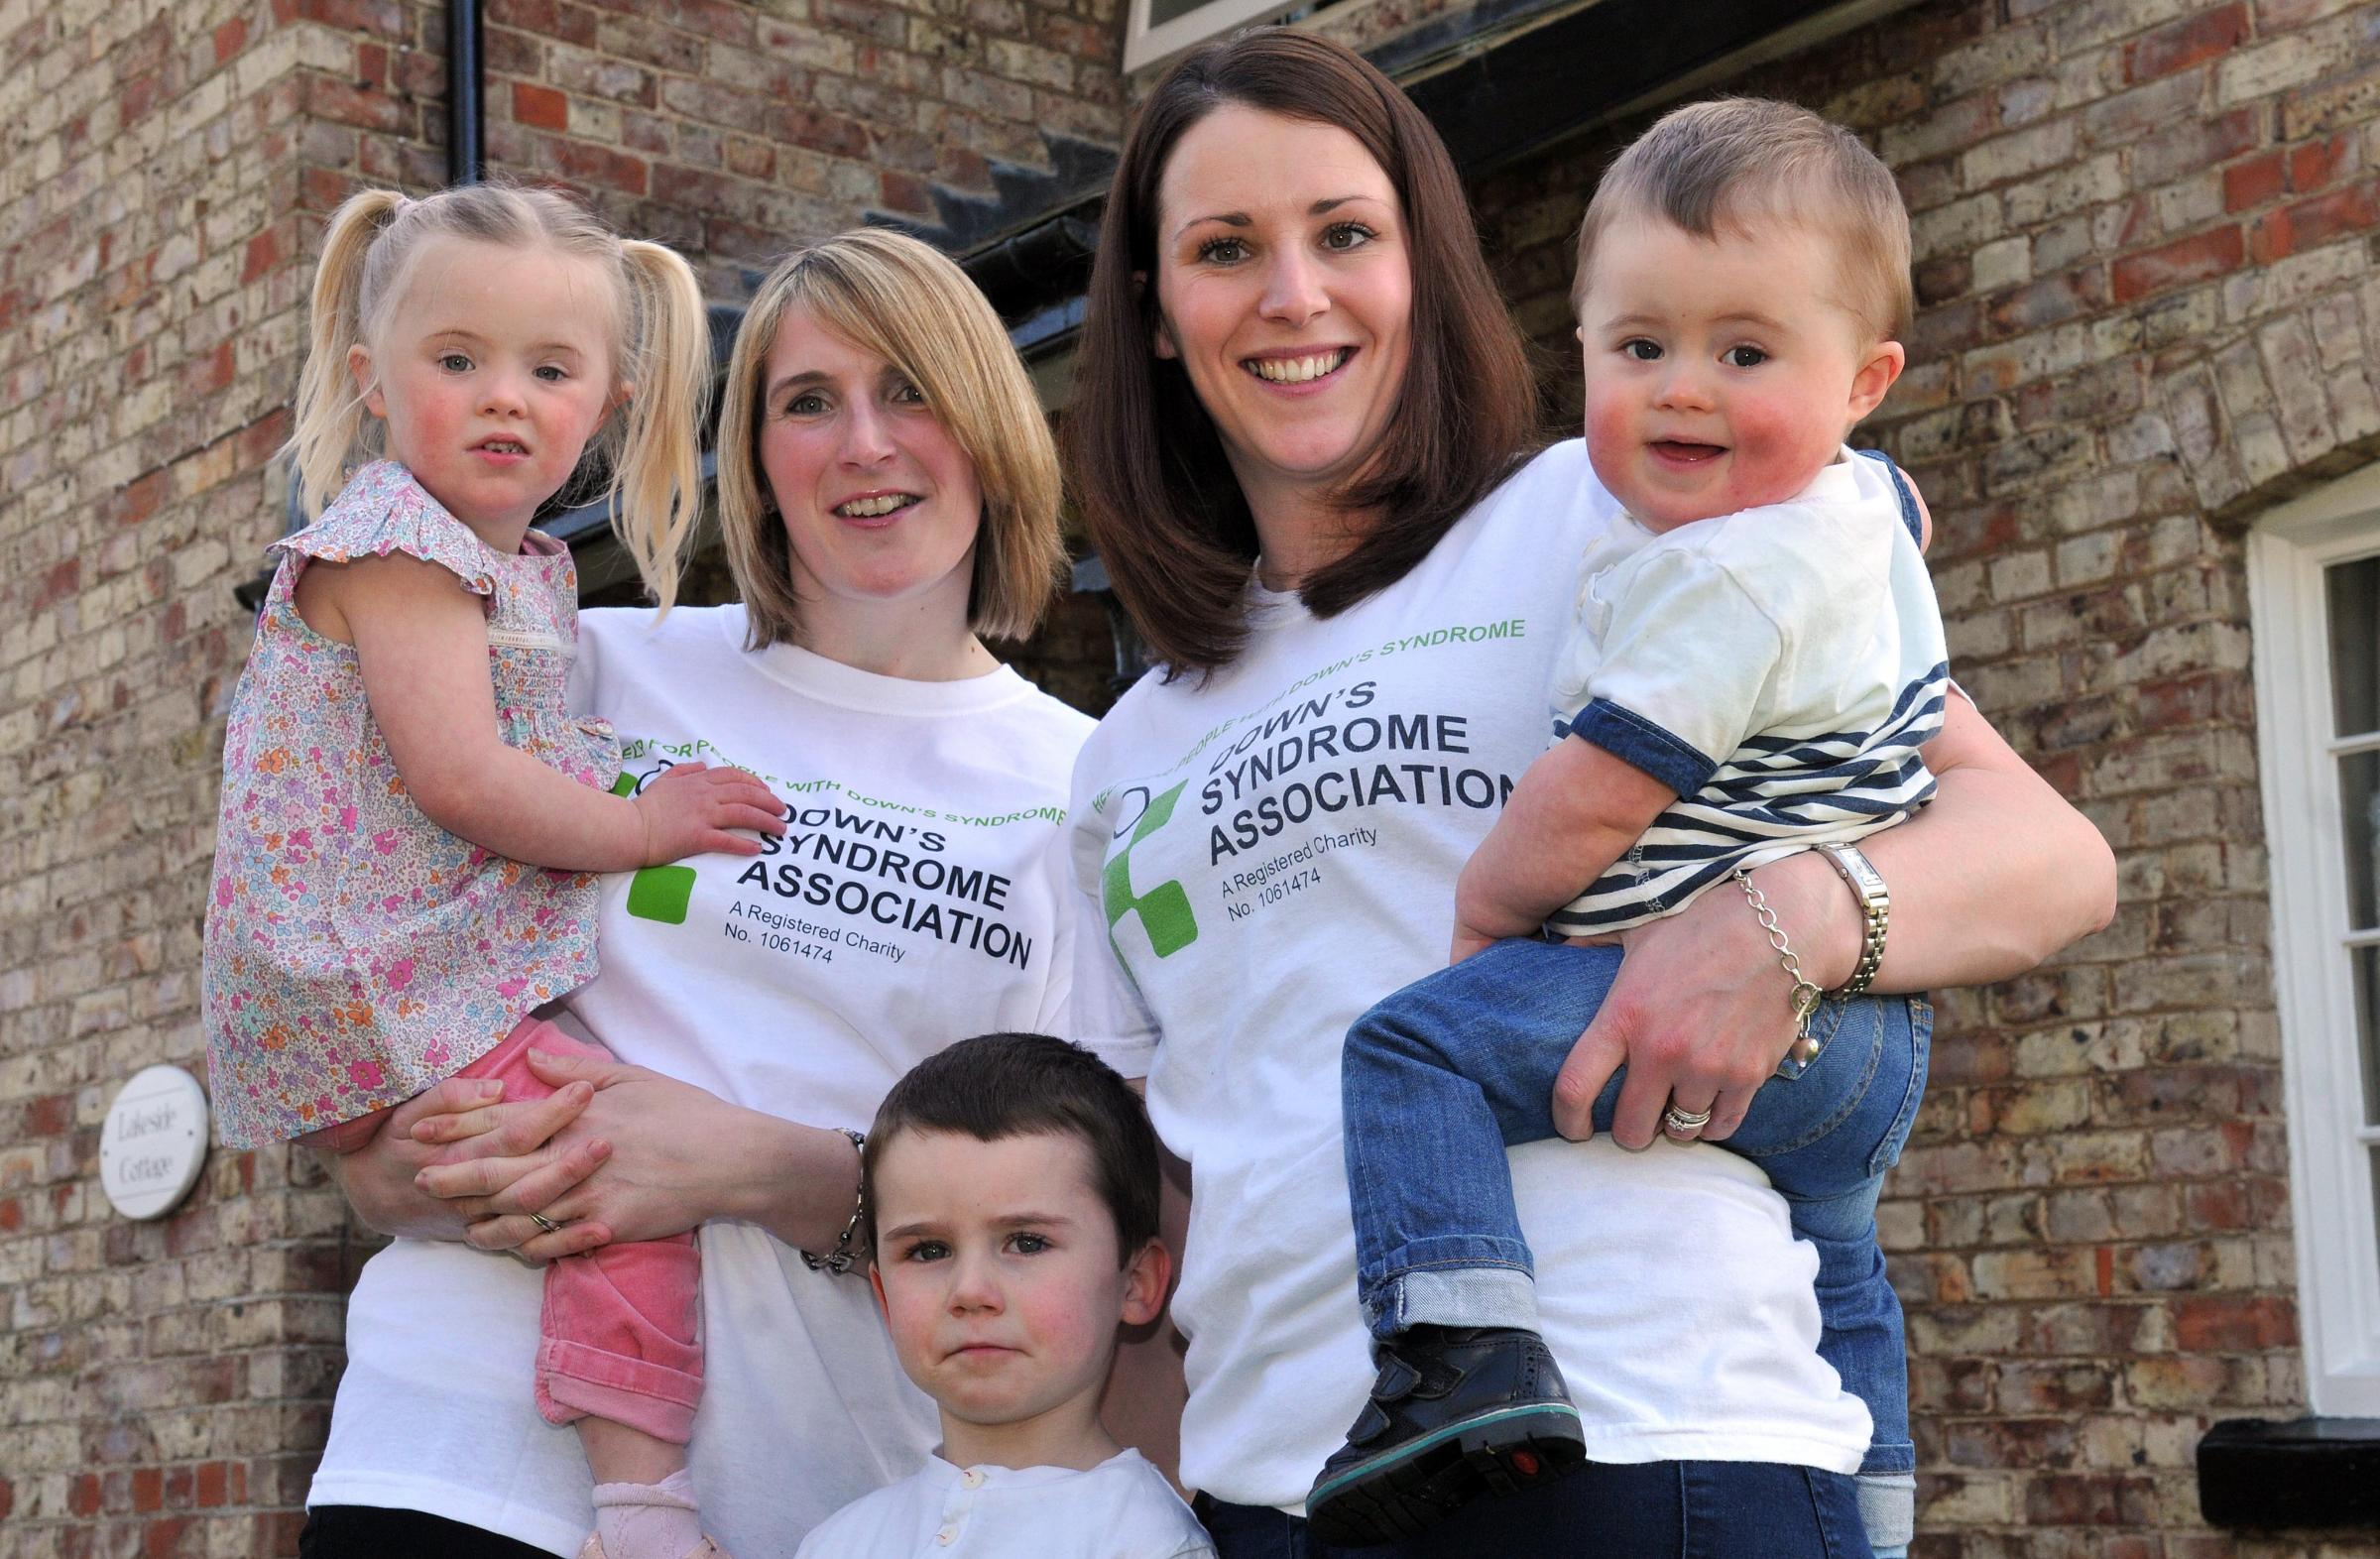 FAMILY WEEK: Mums Emily Webster, left, with her daughter Freya, aged three, and Laura Massheder, with her sons Zac, one, and Harry, four, promote the Down's Syndrome Awareness Week Picture: Nigel Holland